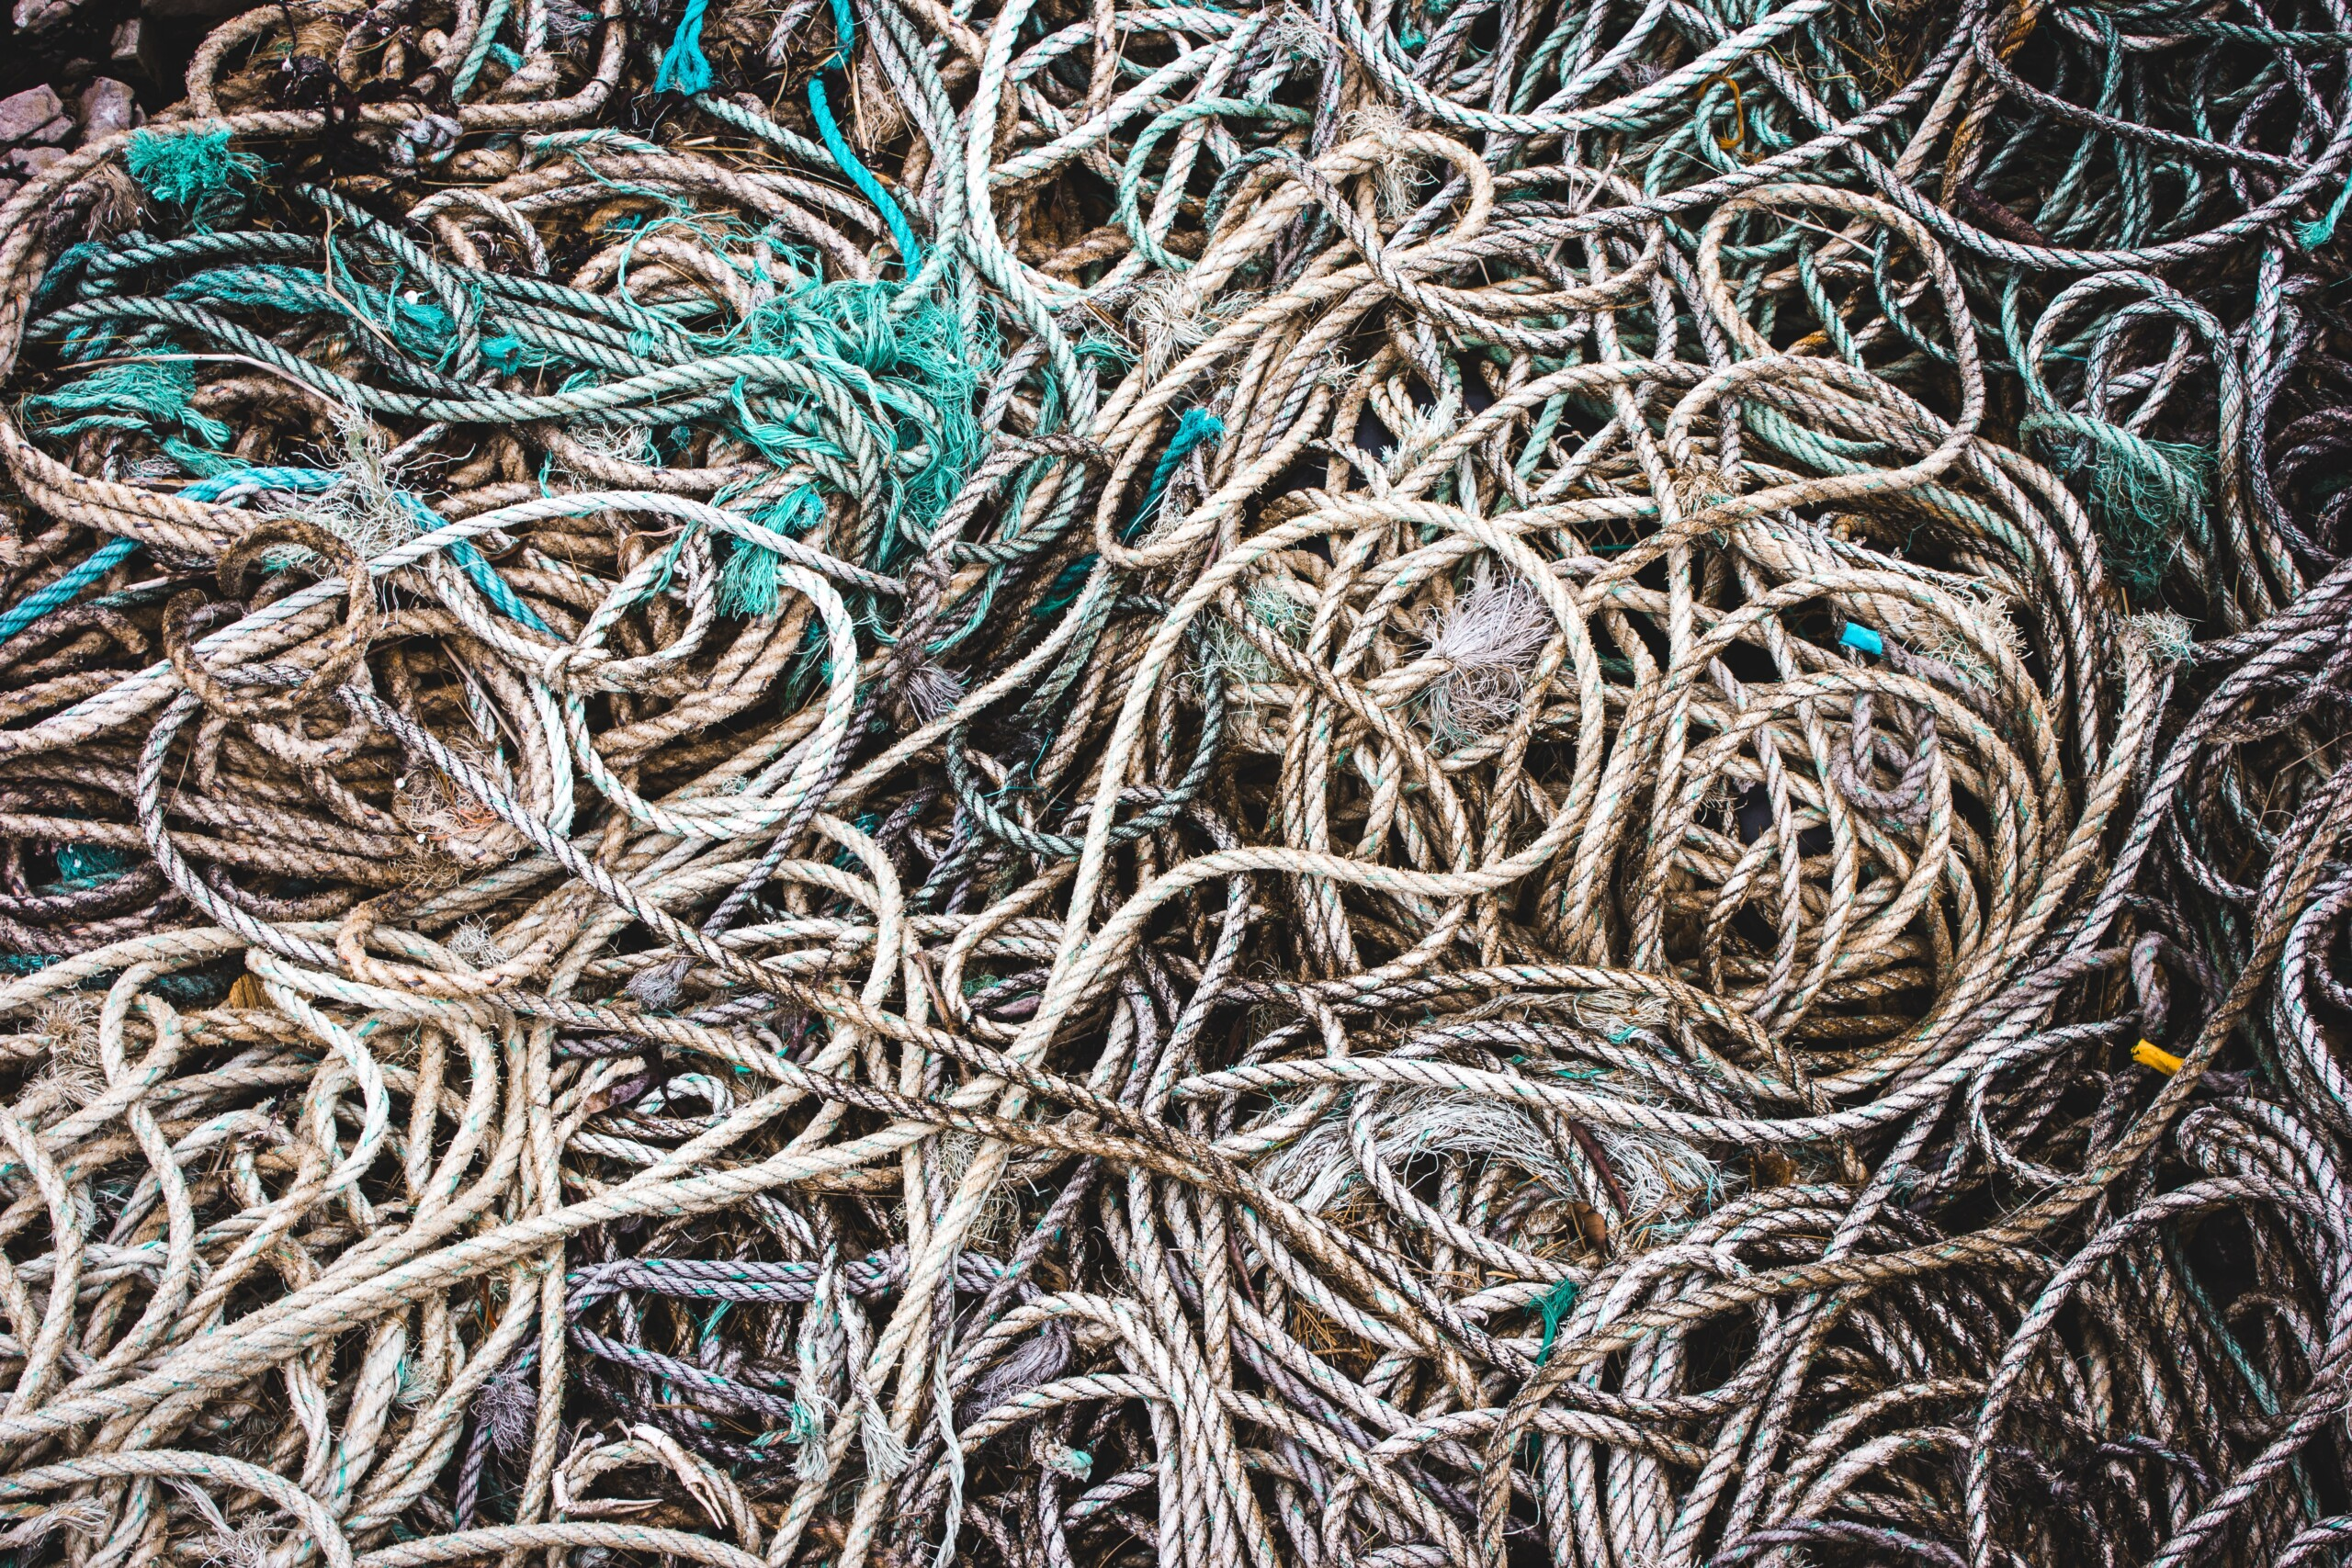 tangled mess of ropes